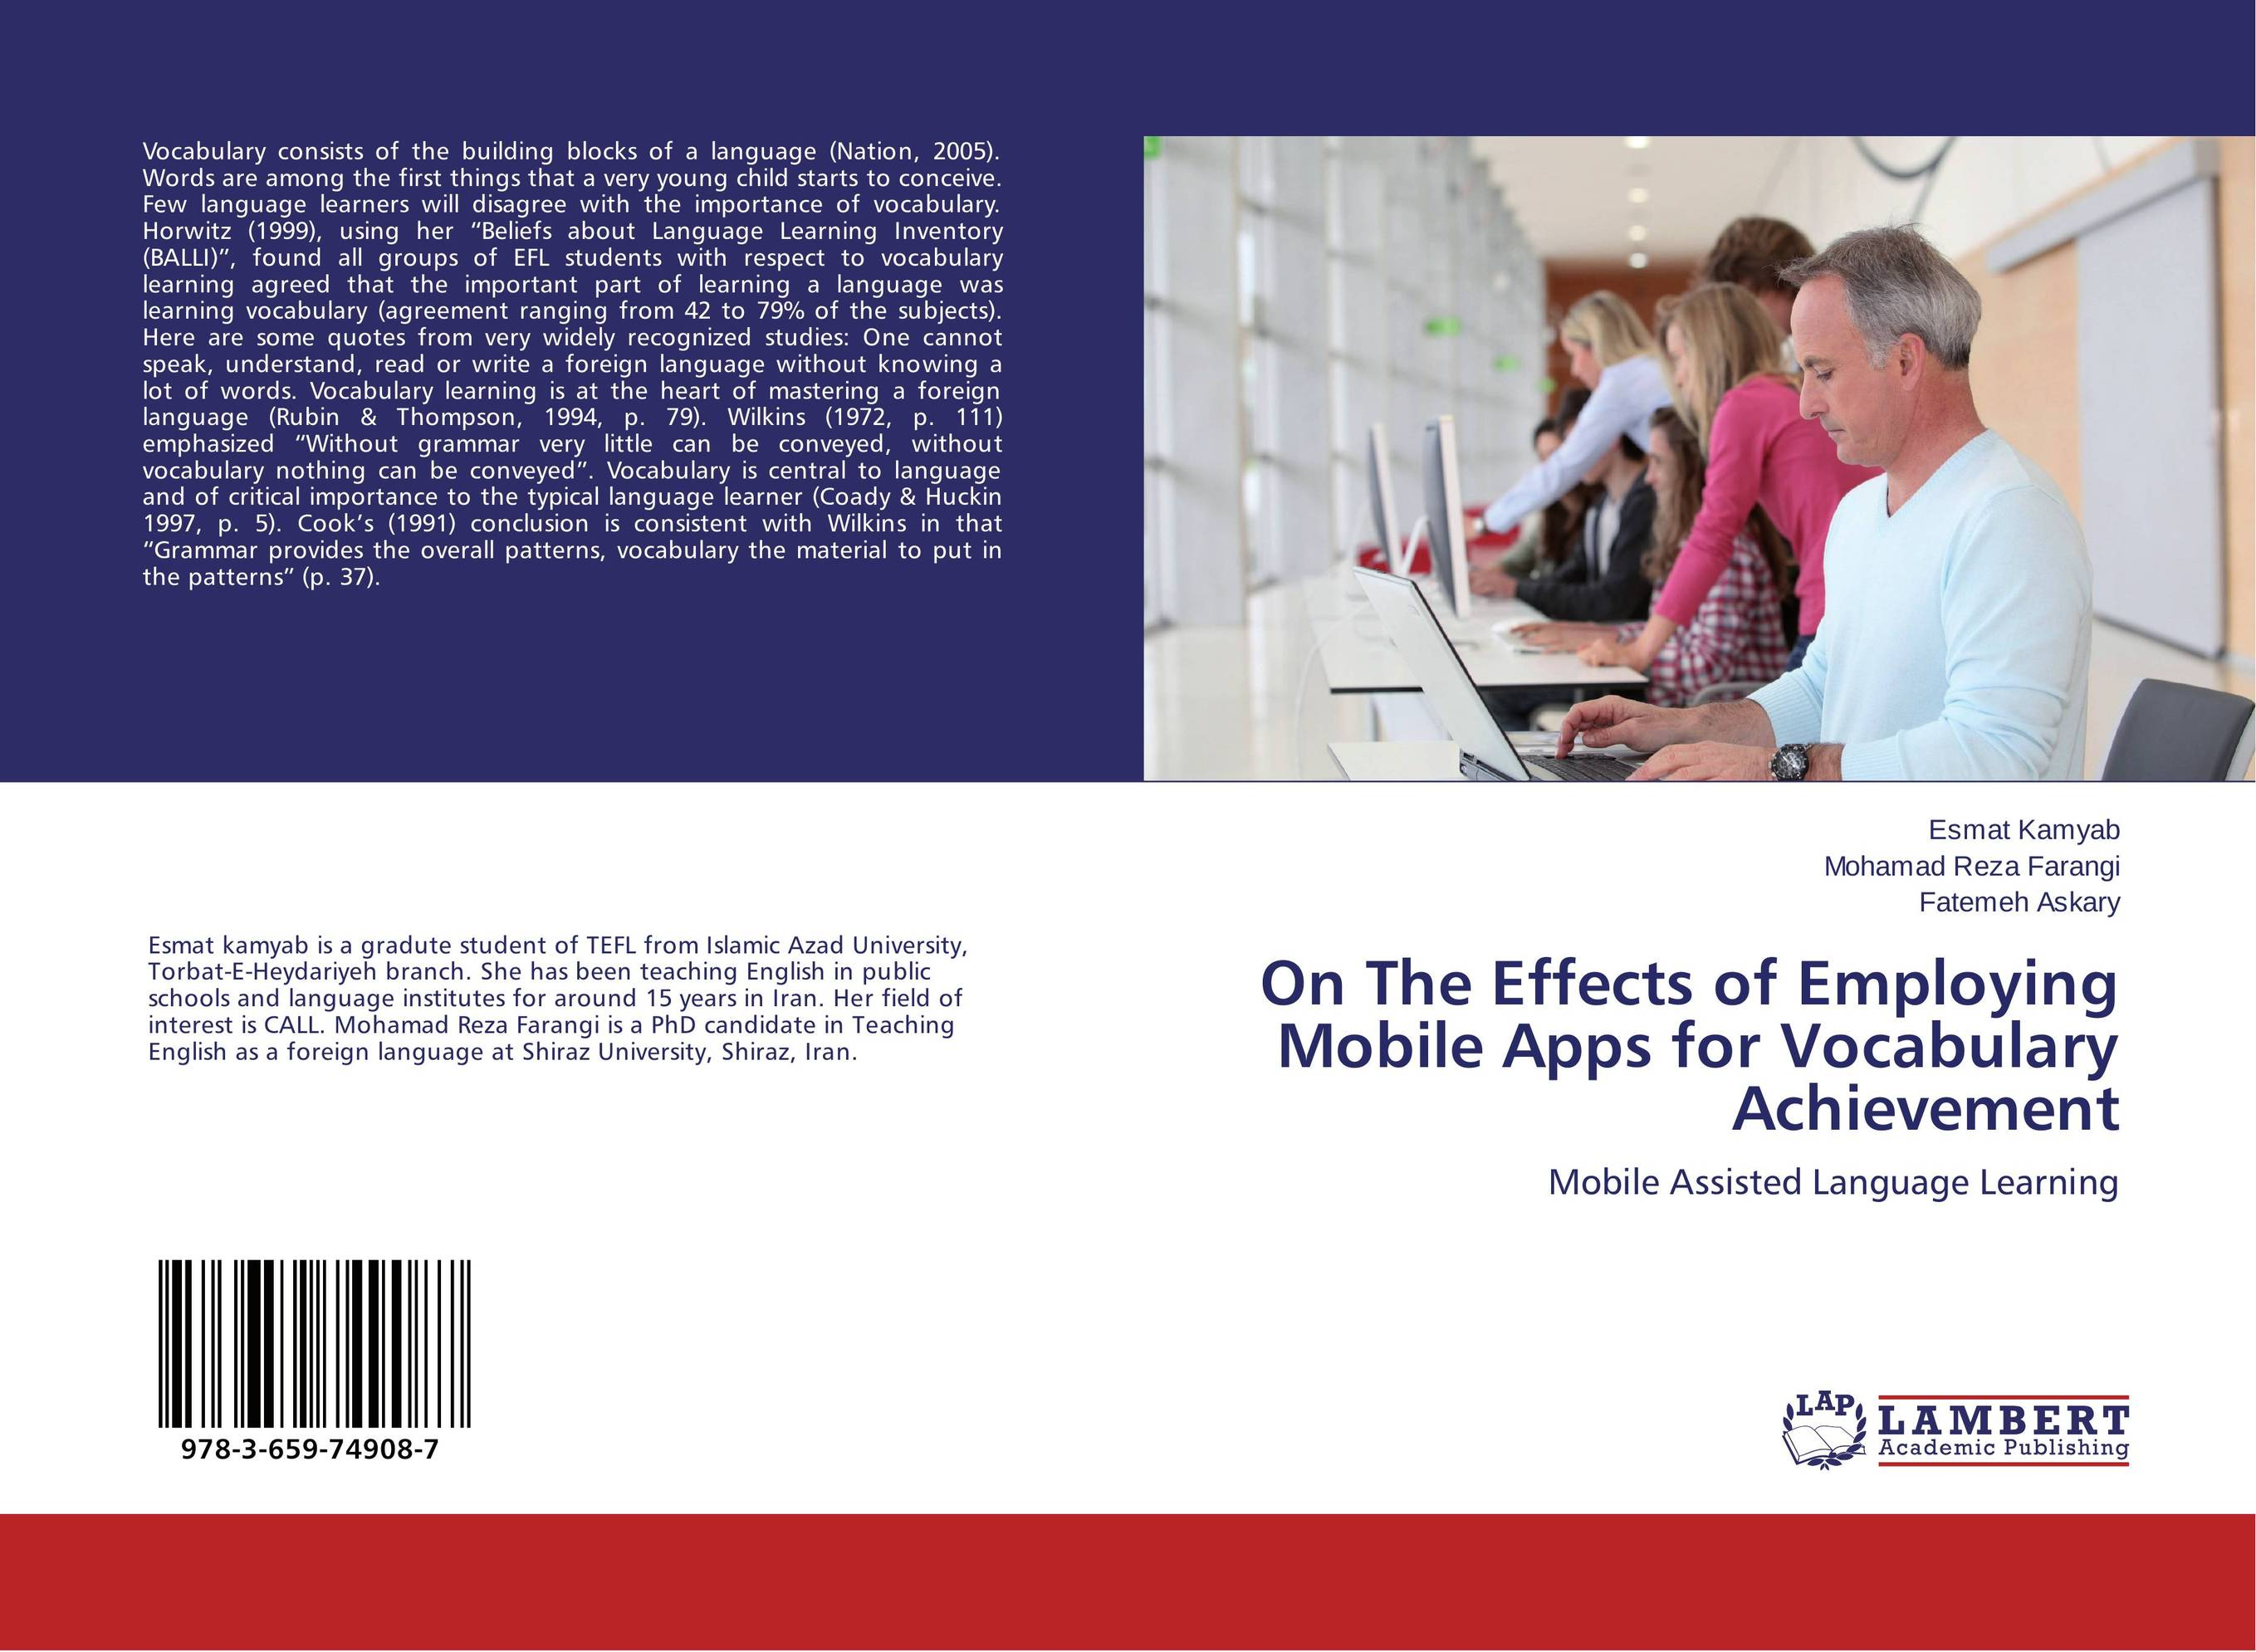 On The Effects of Employing Mobile Apps for Vocabulary Achievement strategic vocabulary learning